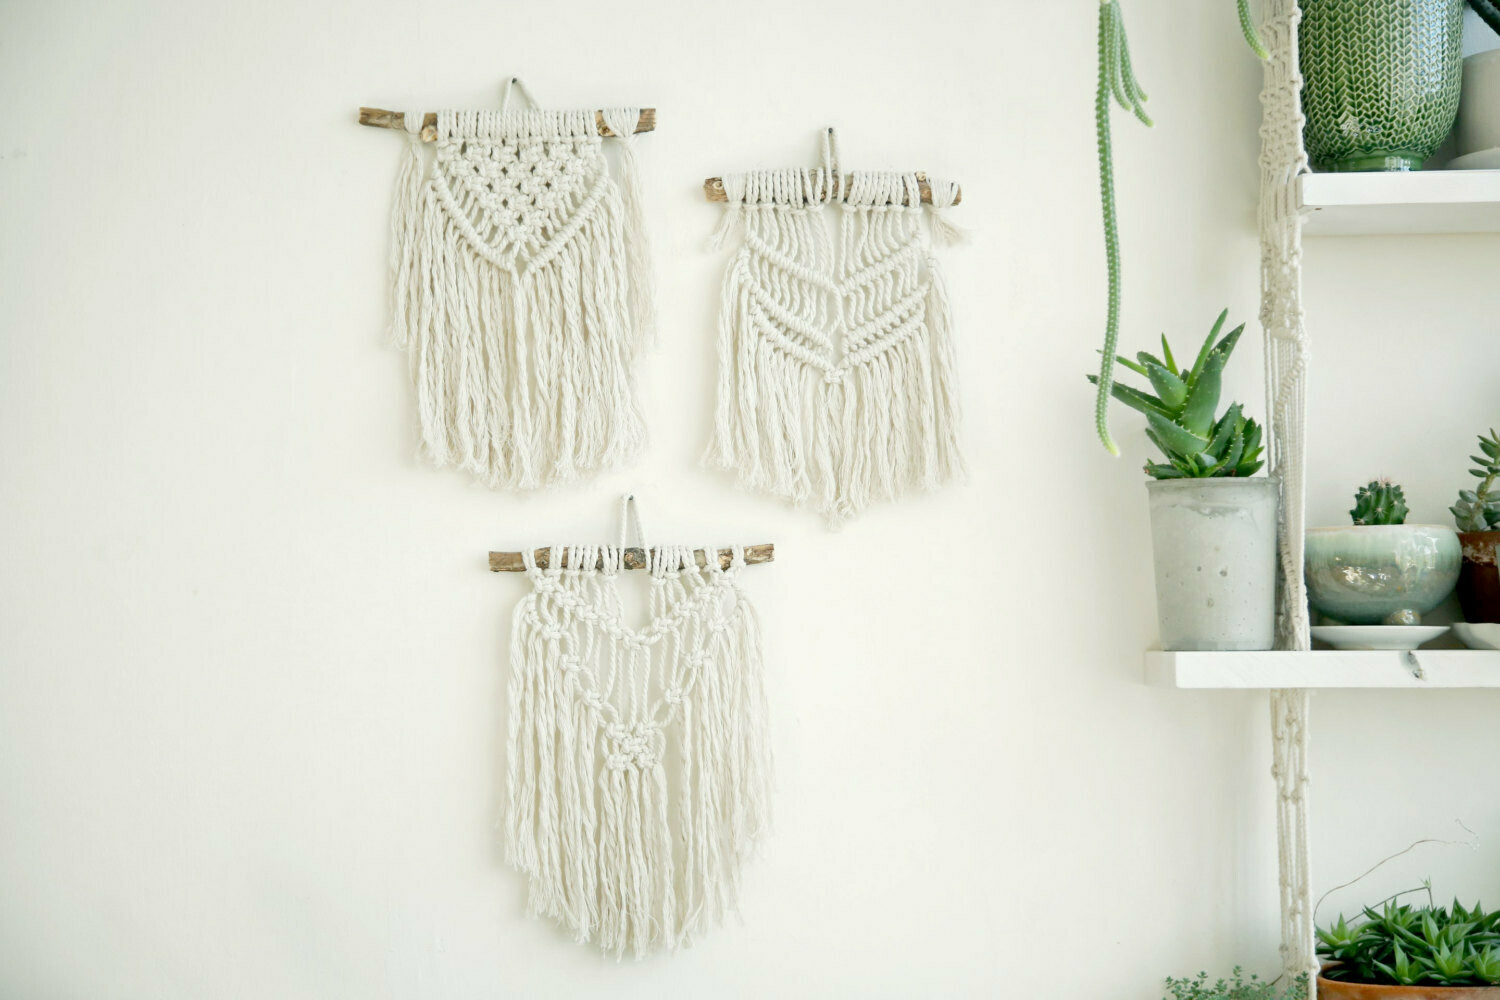 Small wall hanging macrame workshop - Friday 31 July 11am - 1pm